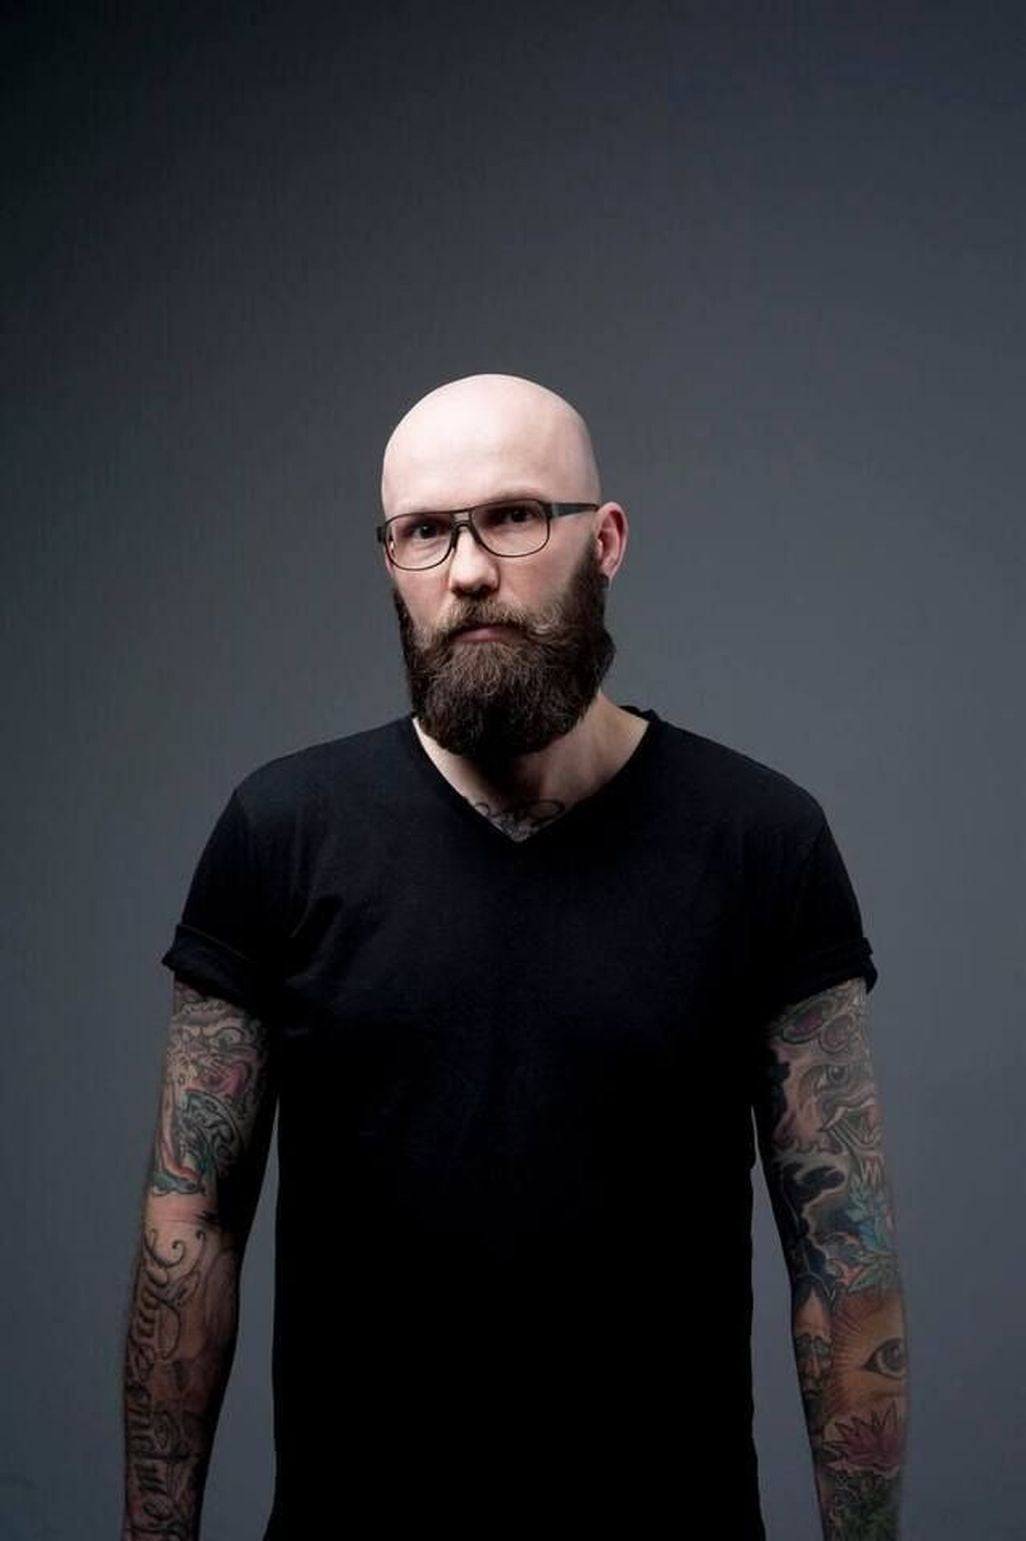 Serious-looking Caucasian bald man with tattoos beard and glasses